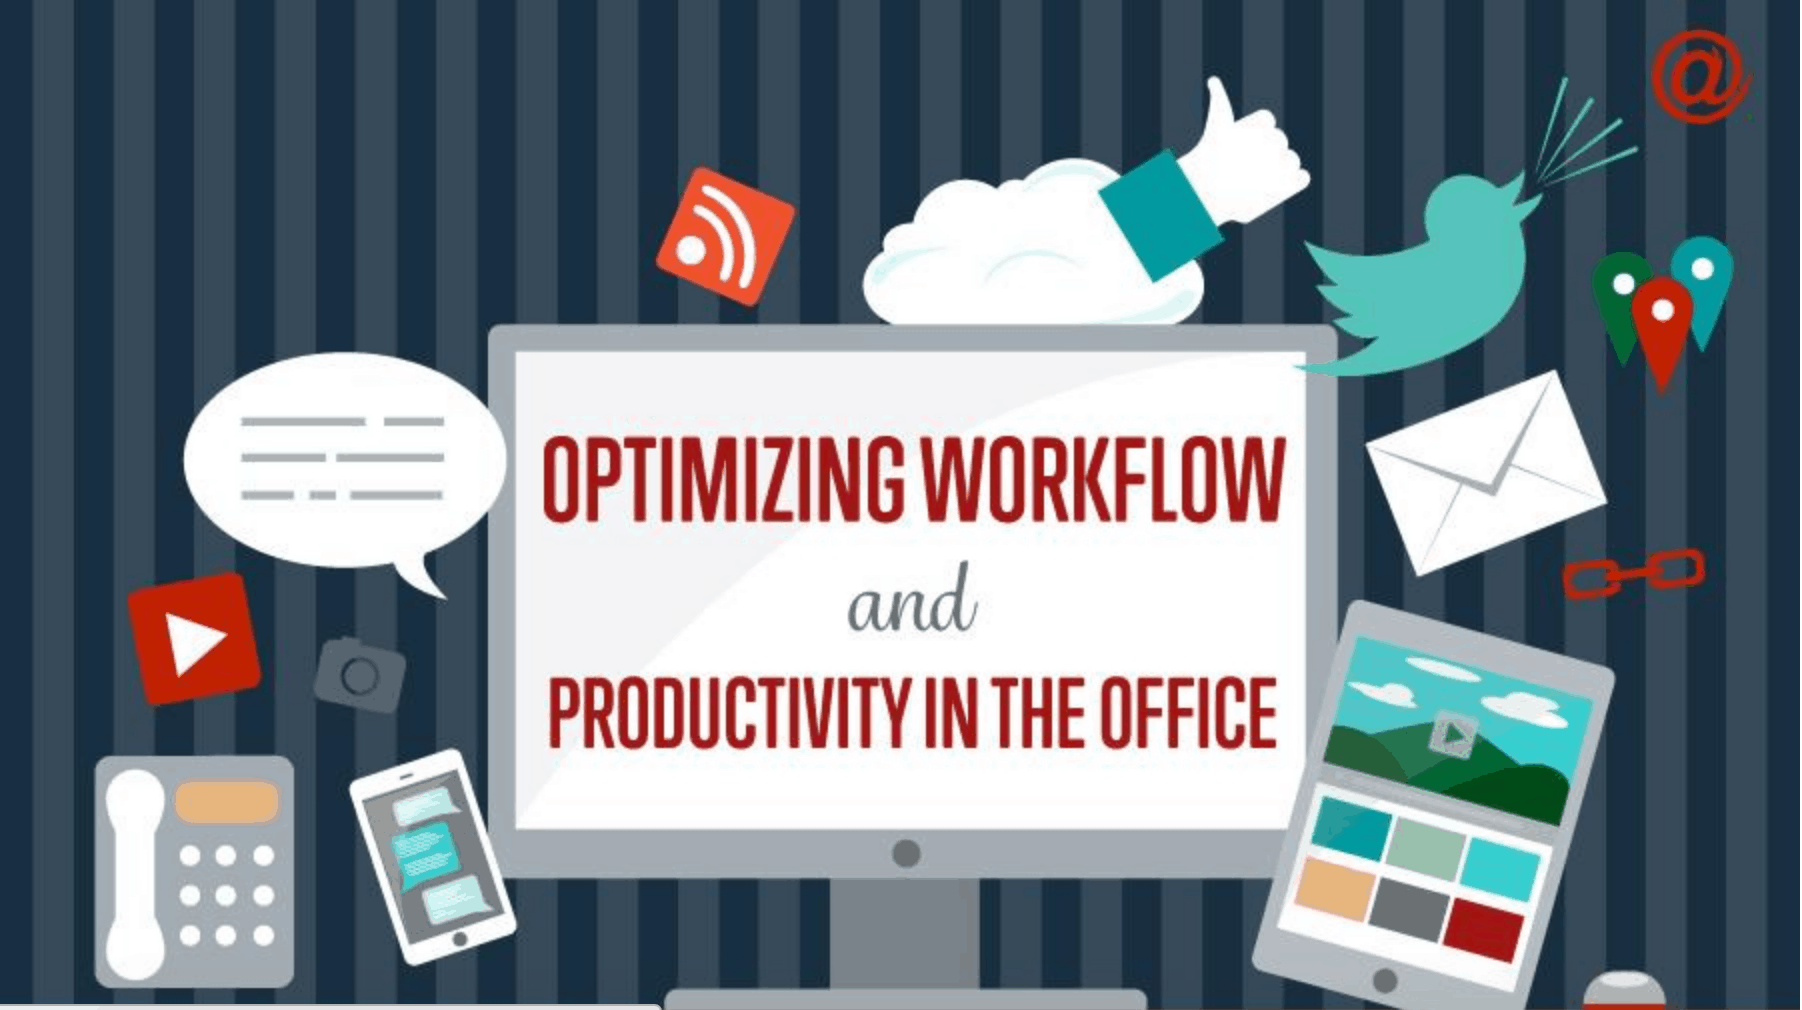 optimize workflow in the office